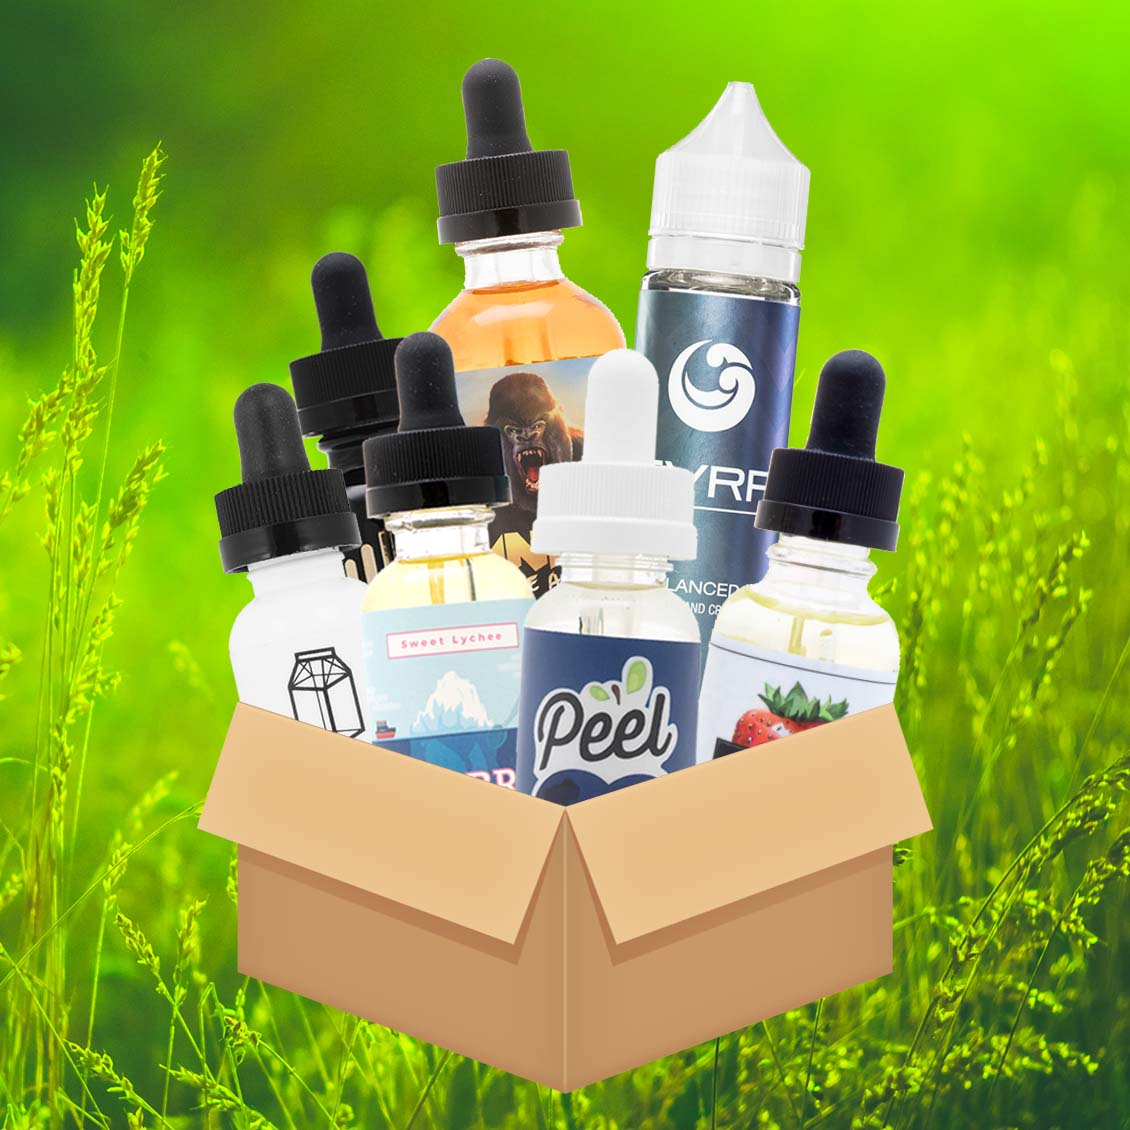 Premium Variety Bundle w/ ANML Unleashed, SVRF, Milkman and More - 300mL! Photo